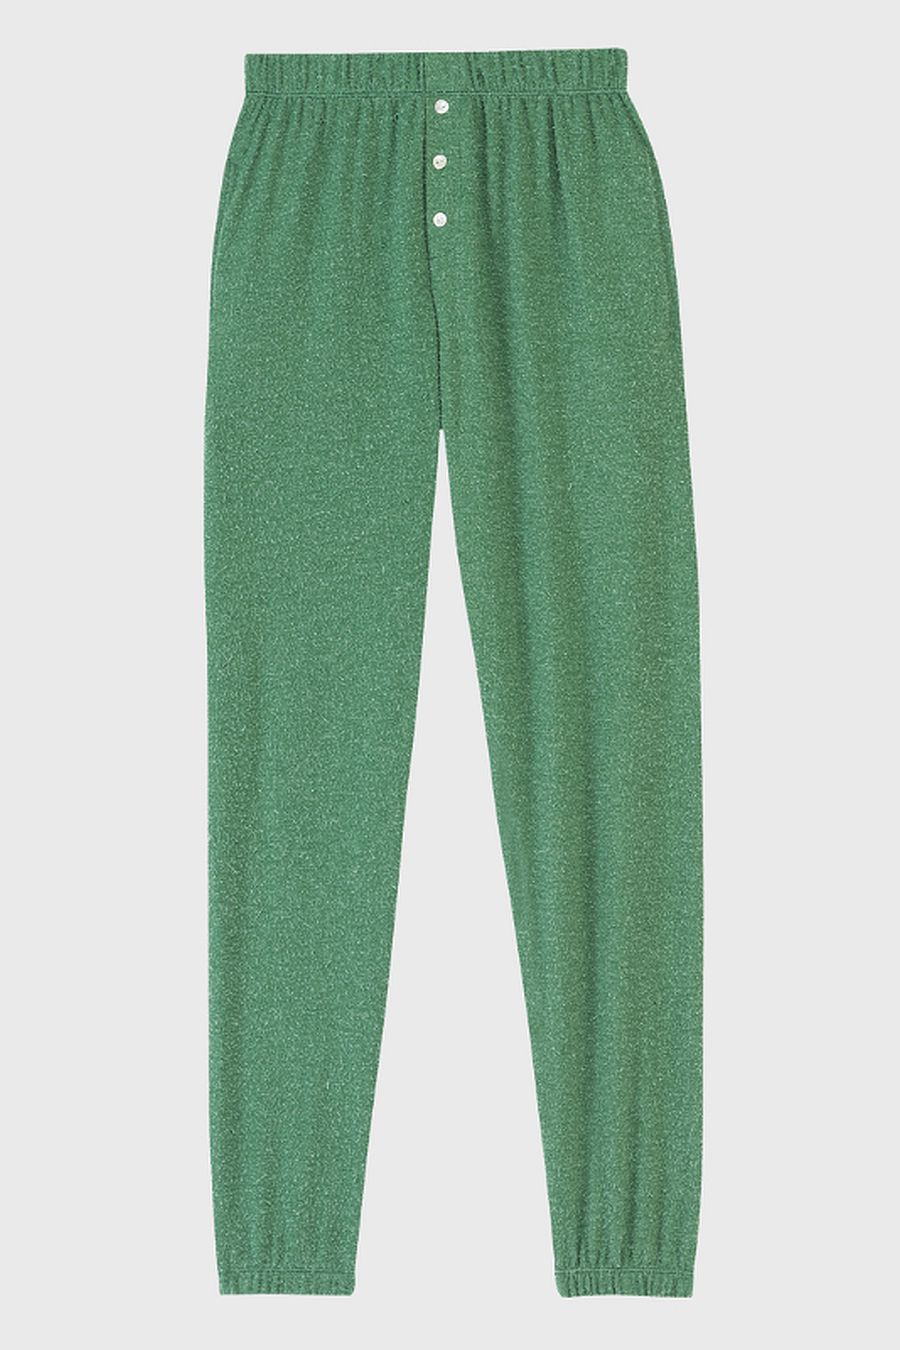 DONNI. Sweater Henley Sweatpant - Kelly